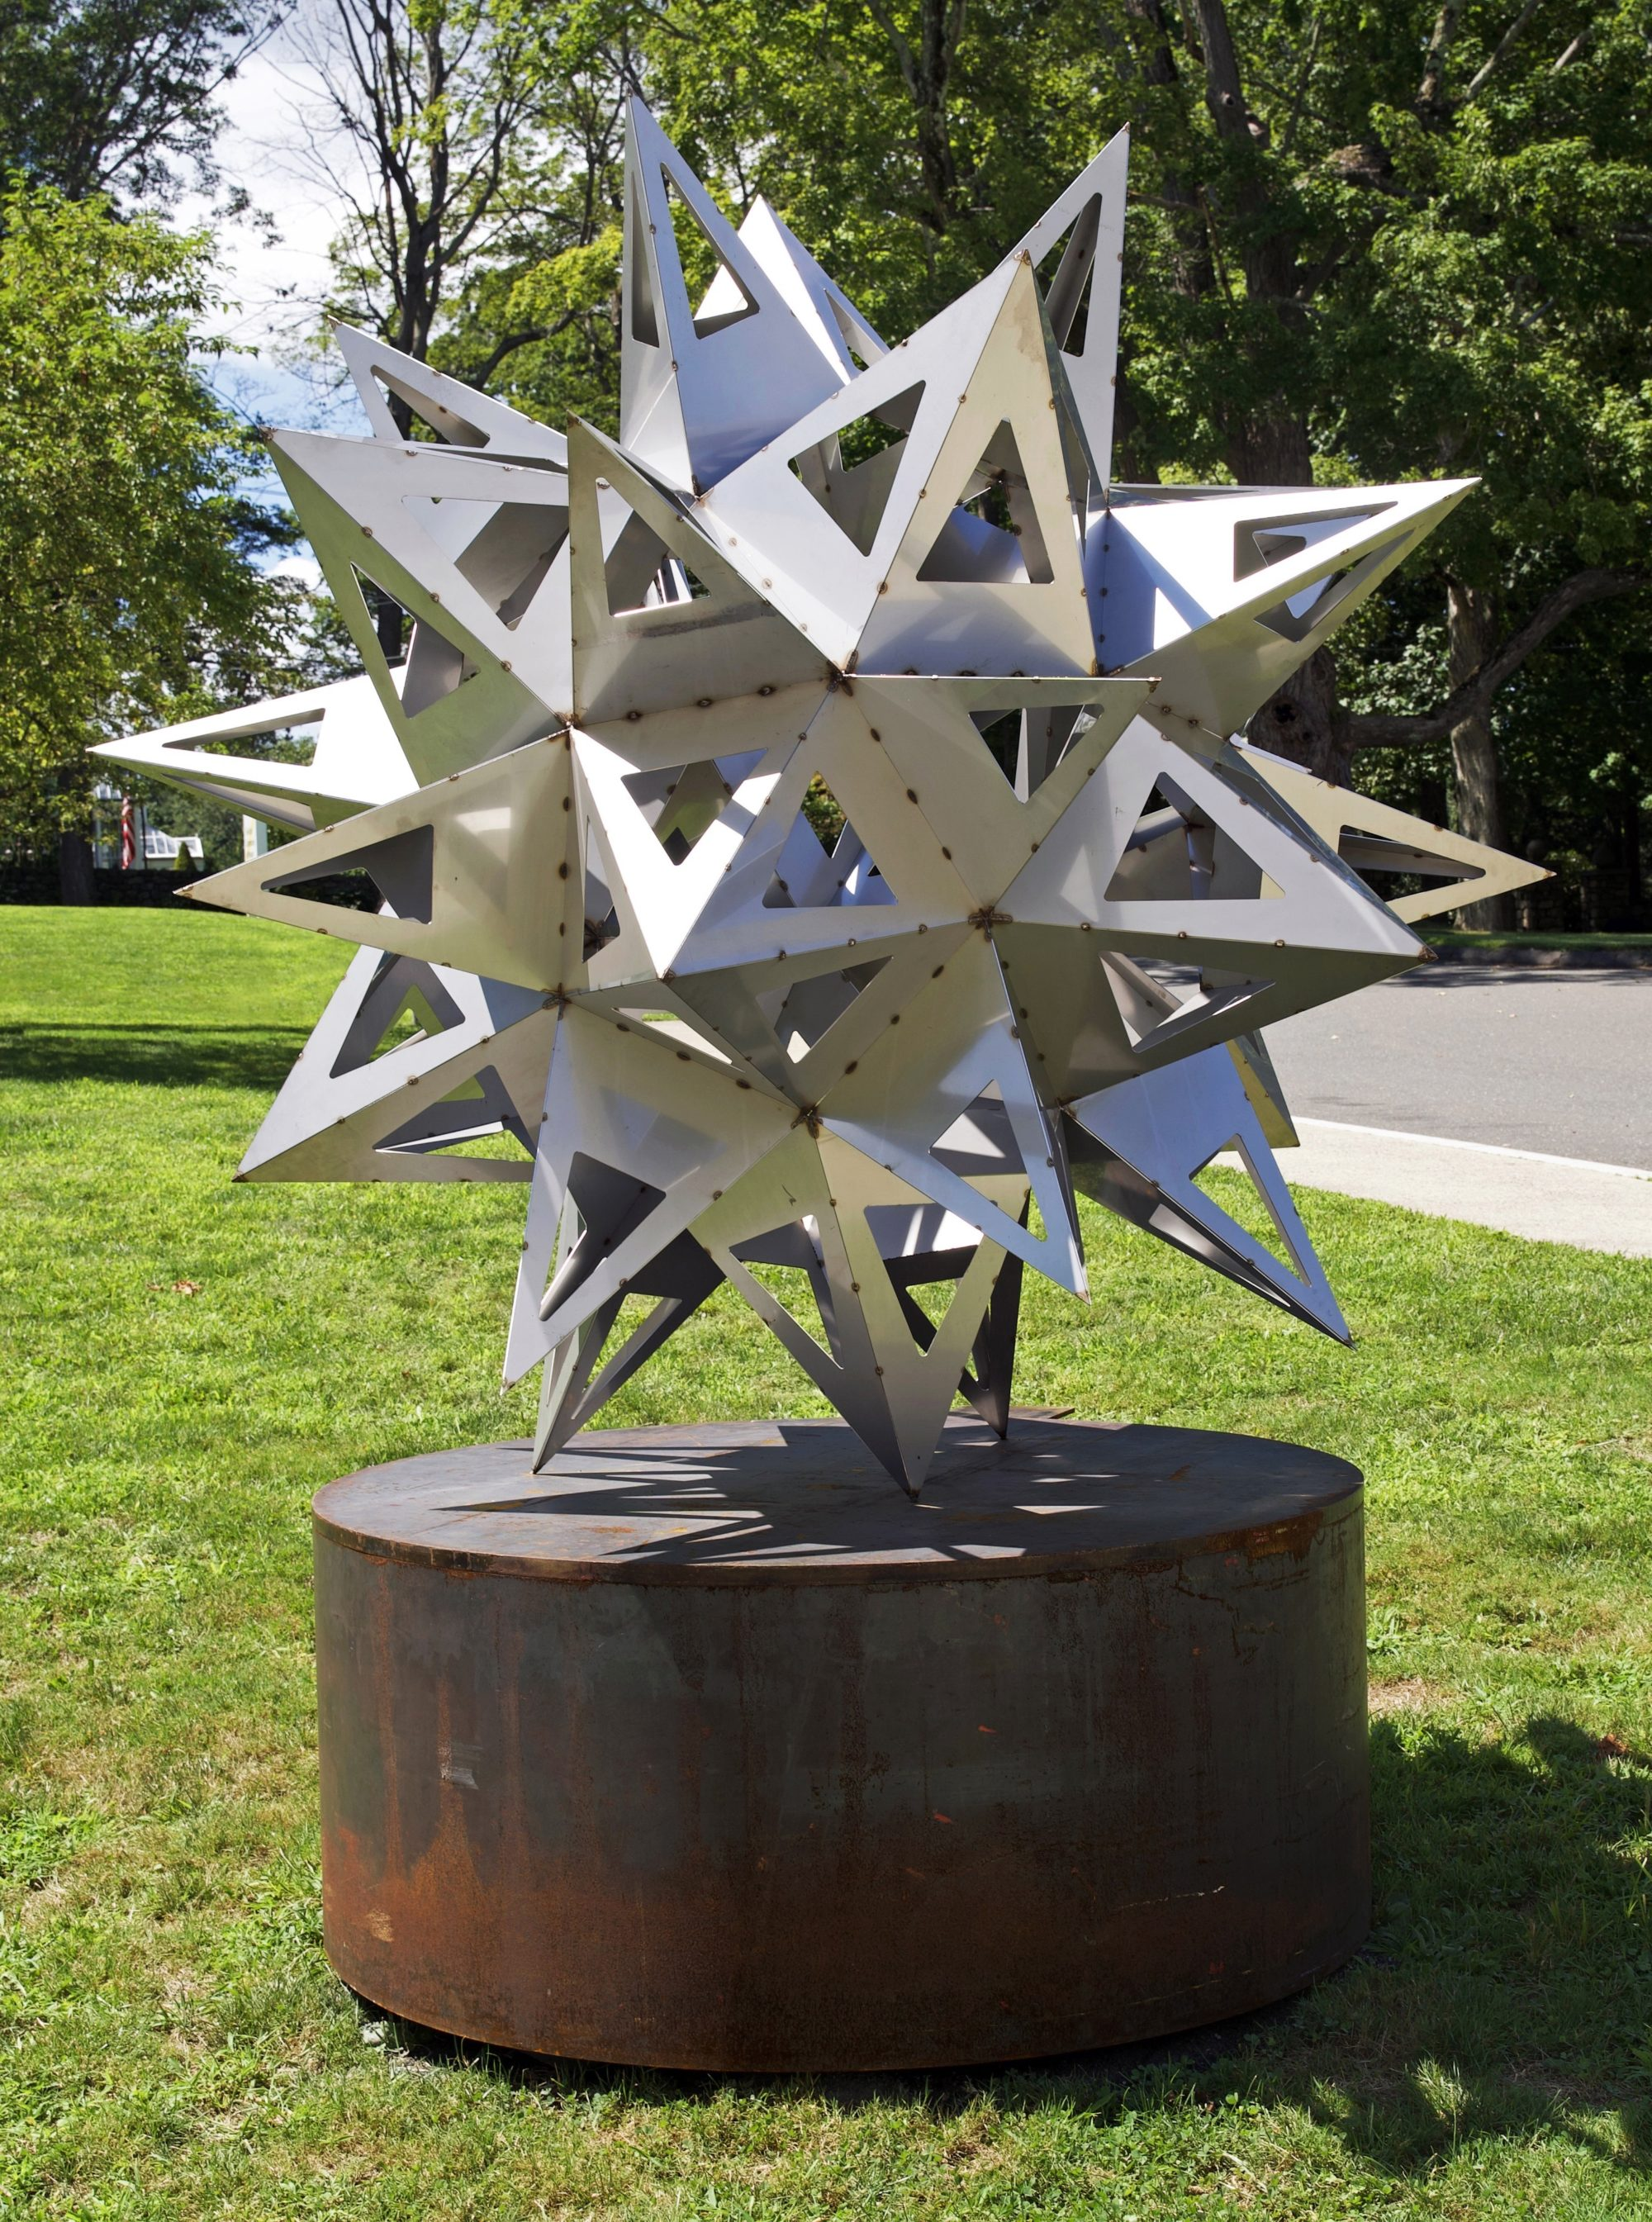 Stainless steel sculpture of an abstract star by Frank Stella sited outside on the Museum's grounds.